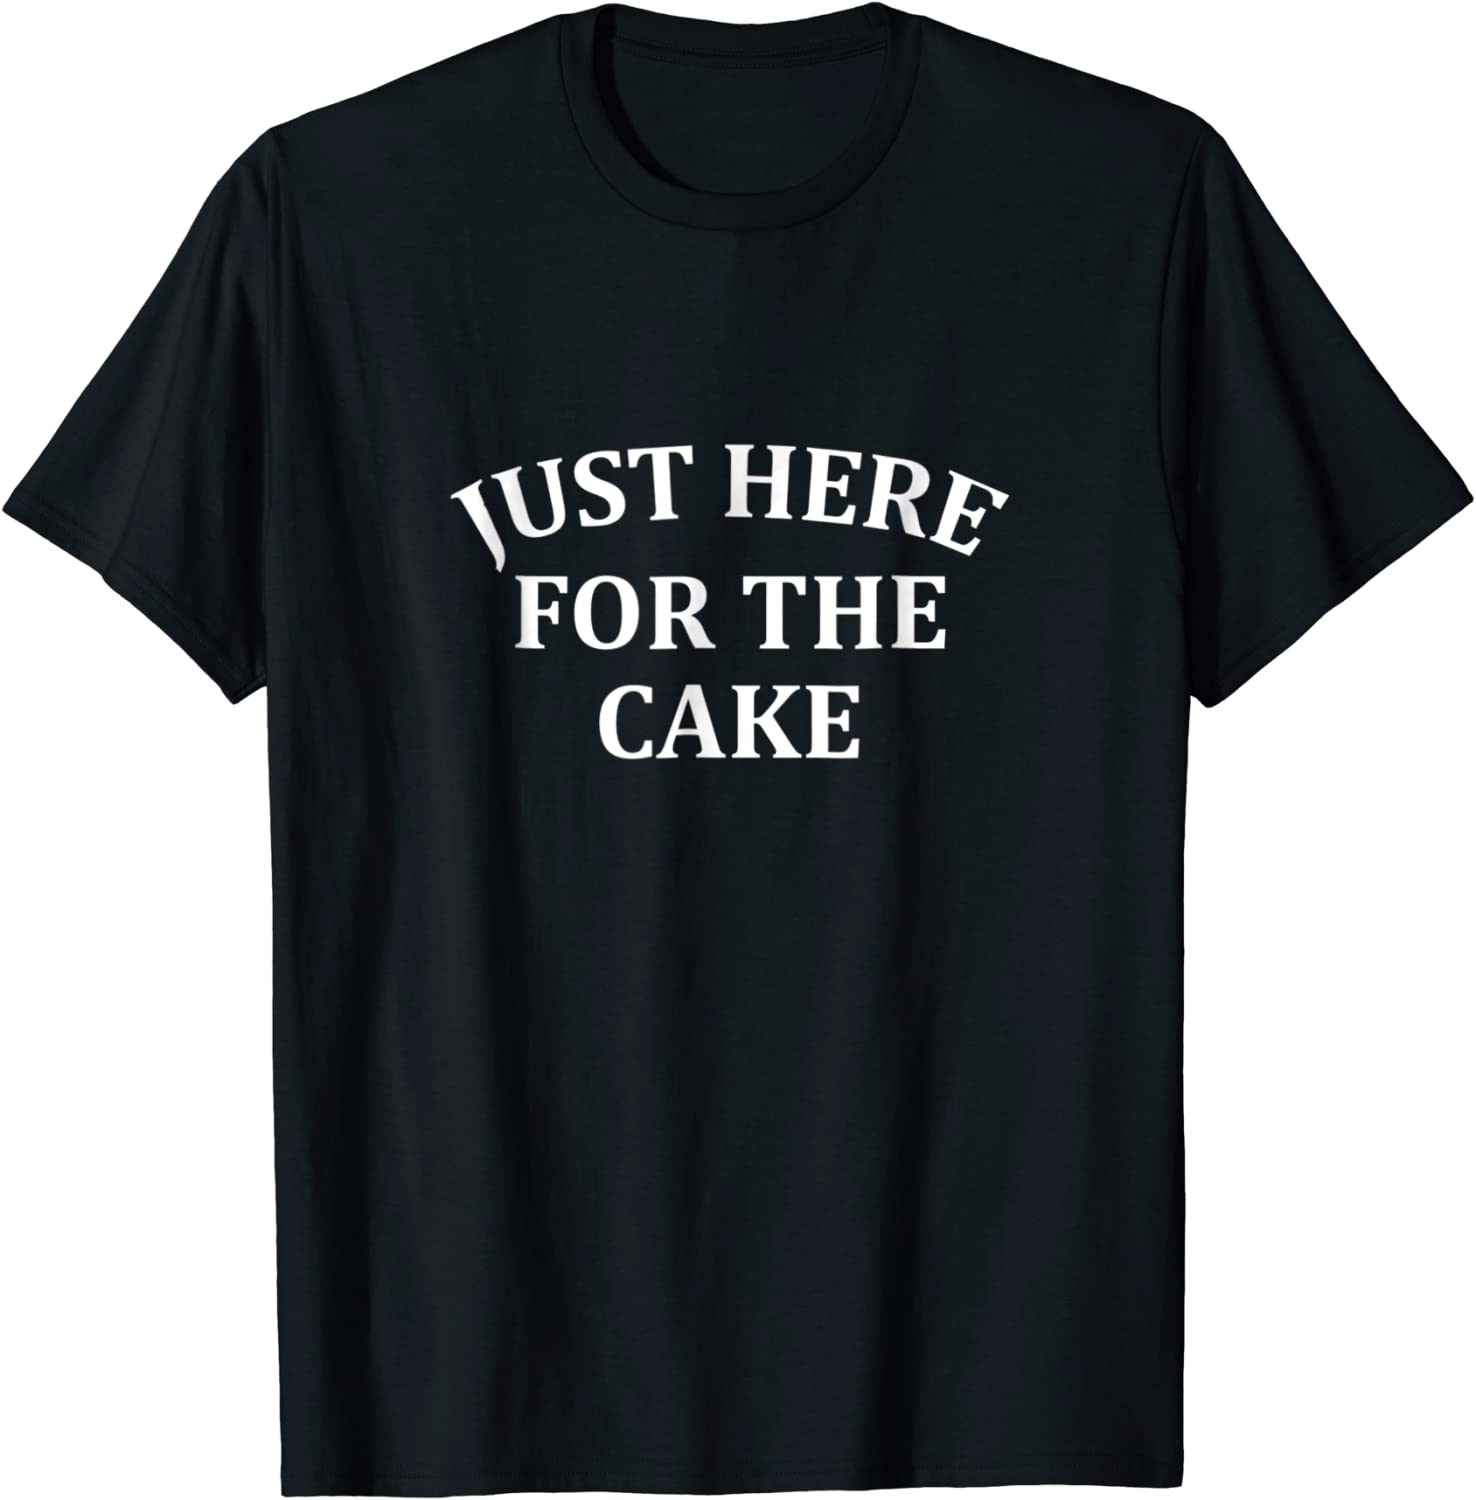 Just Here for the Cake | Funny Food T-Shirt